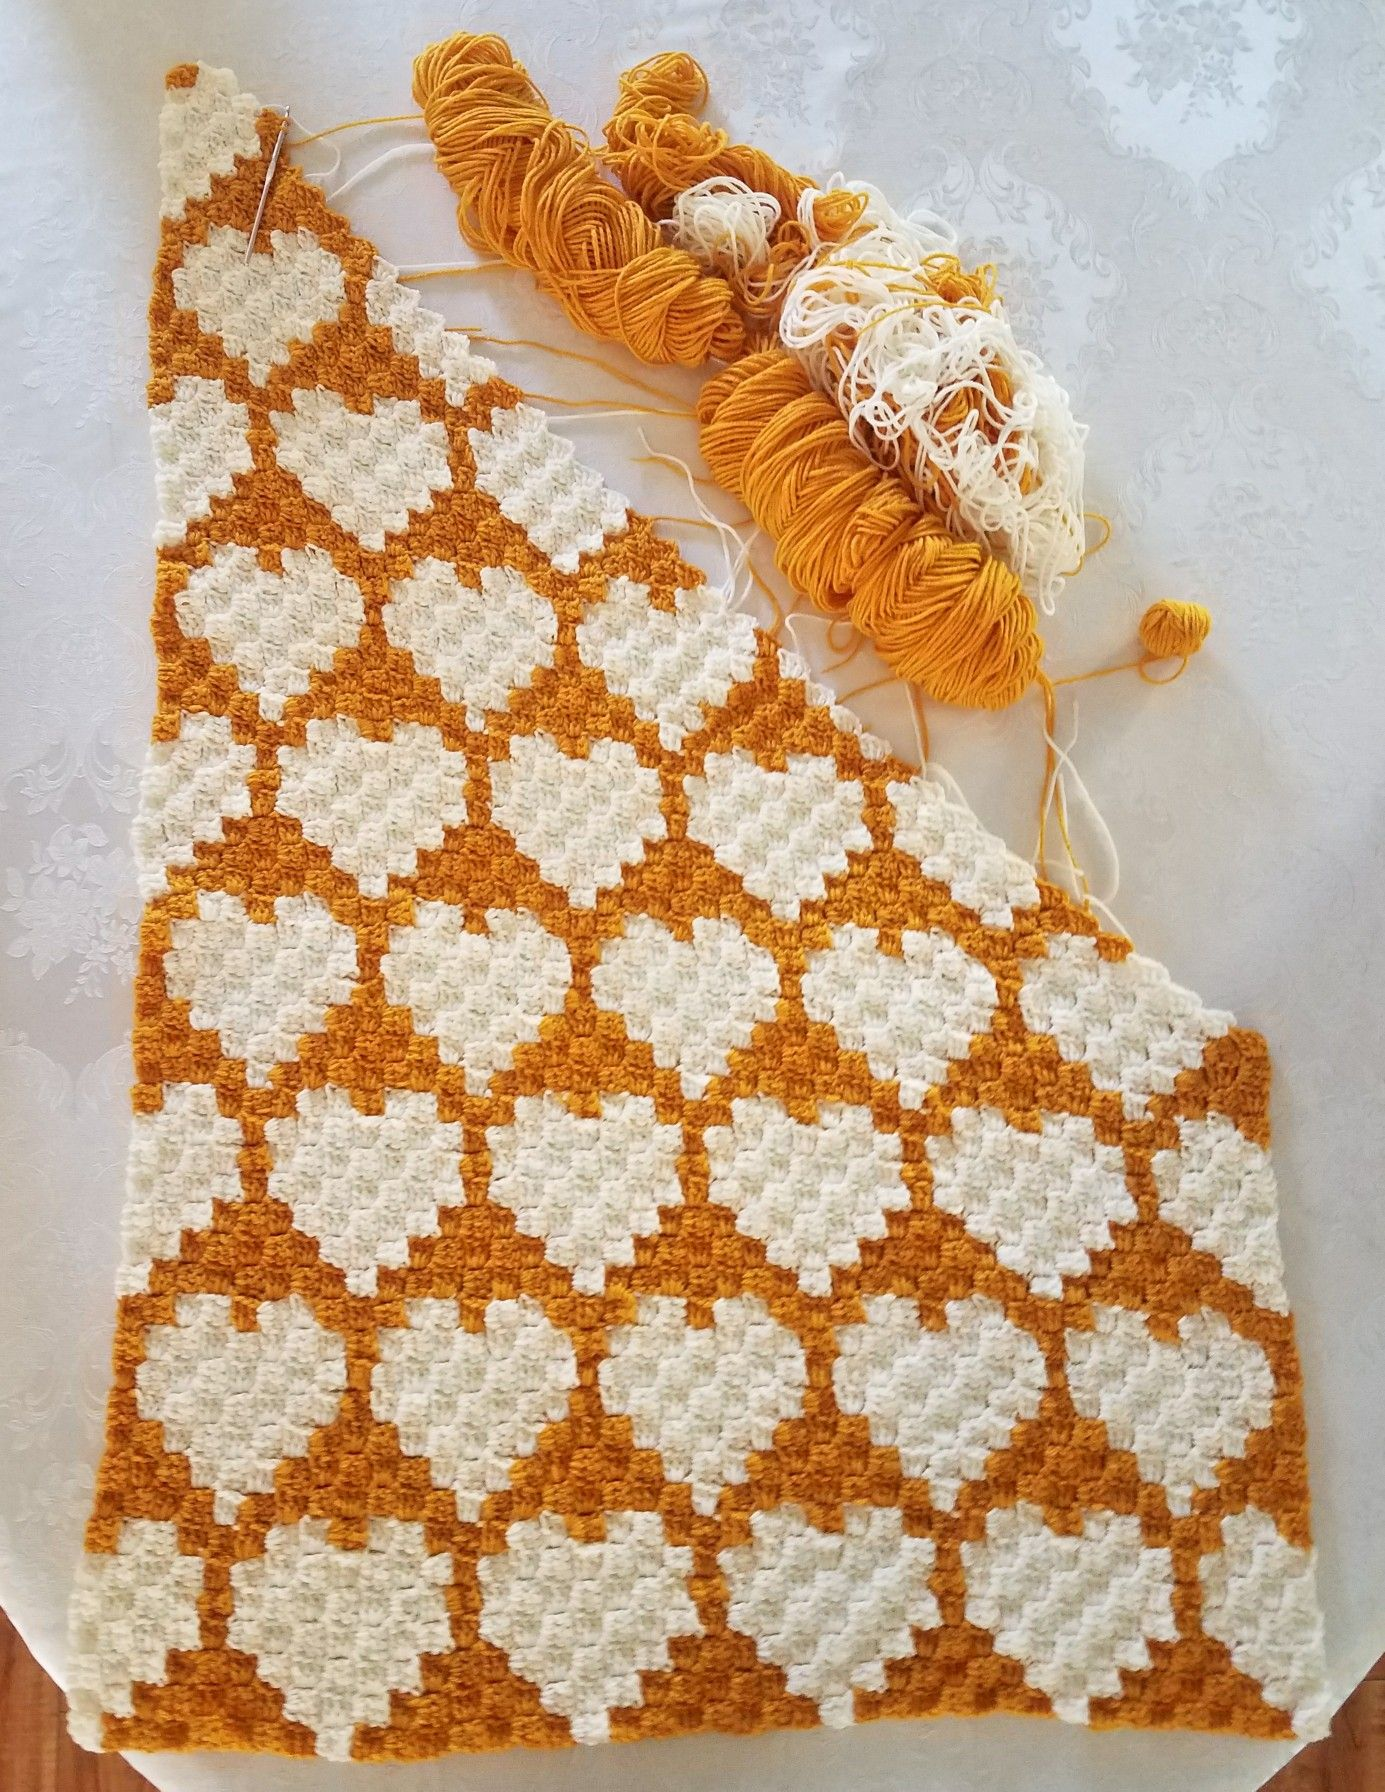 Crochet C2C hearts baby blanket | Crochet 1 stitch at a time ...